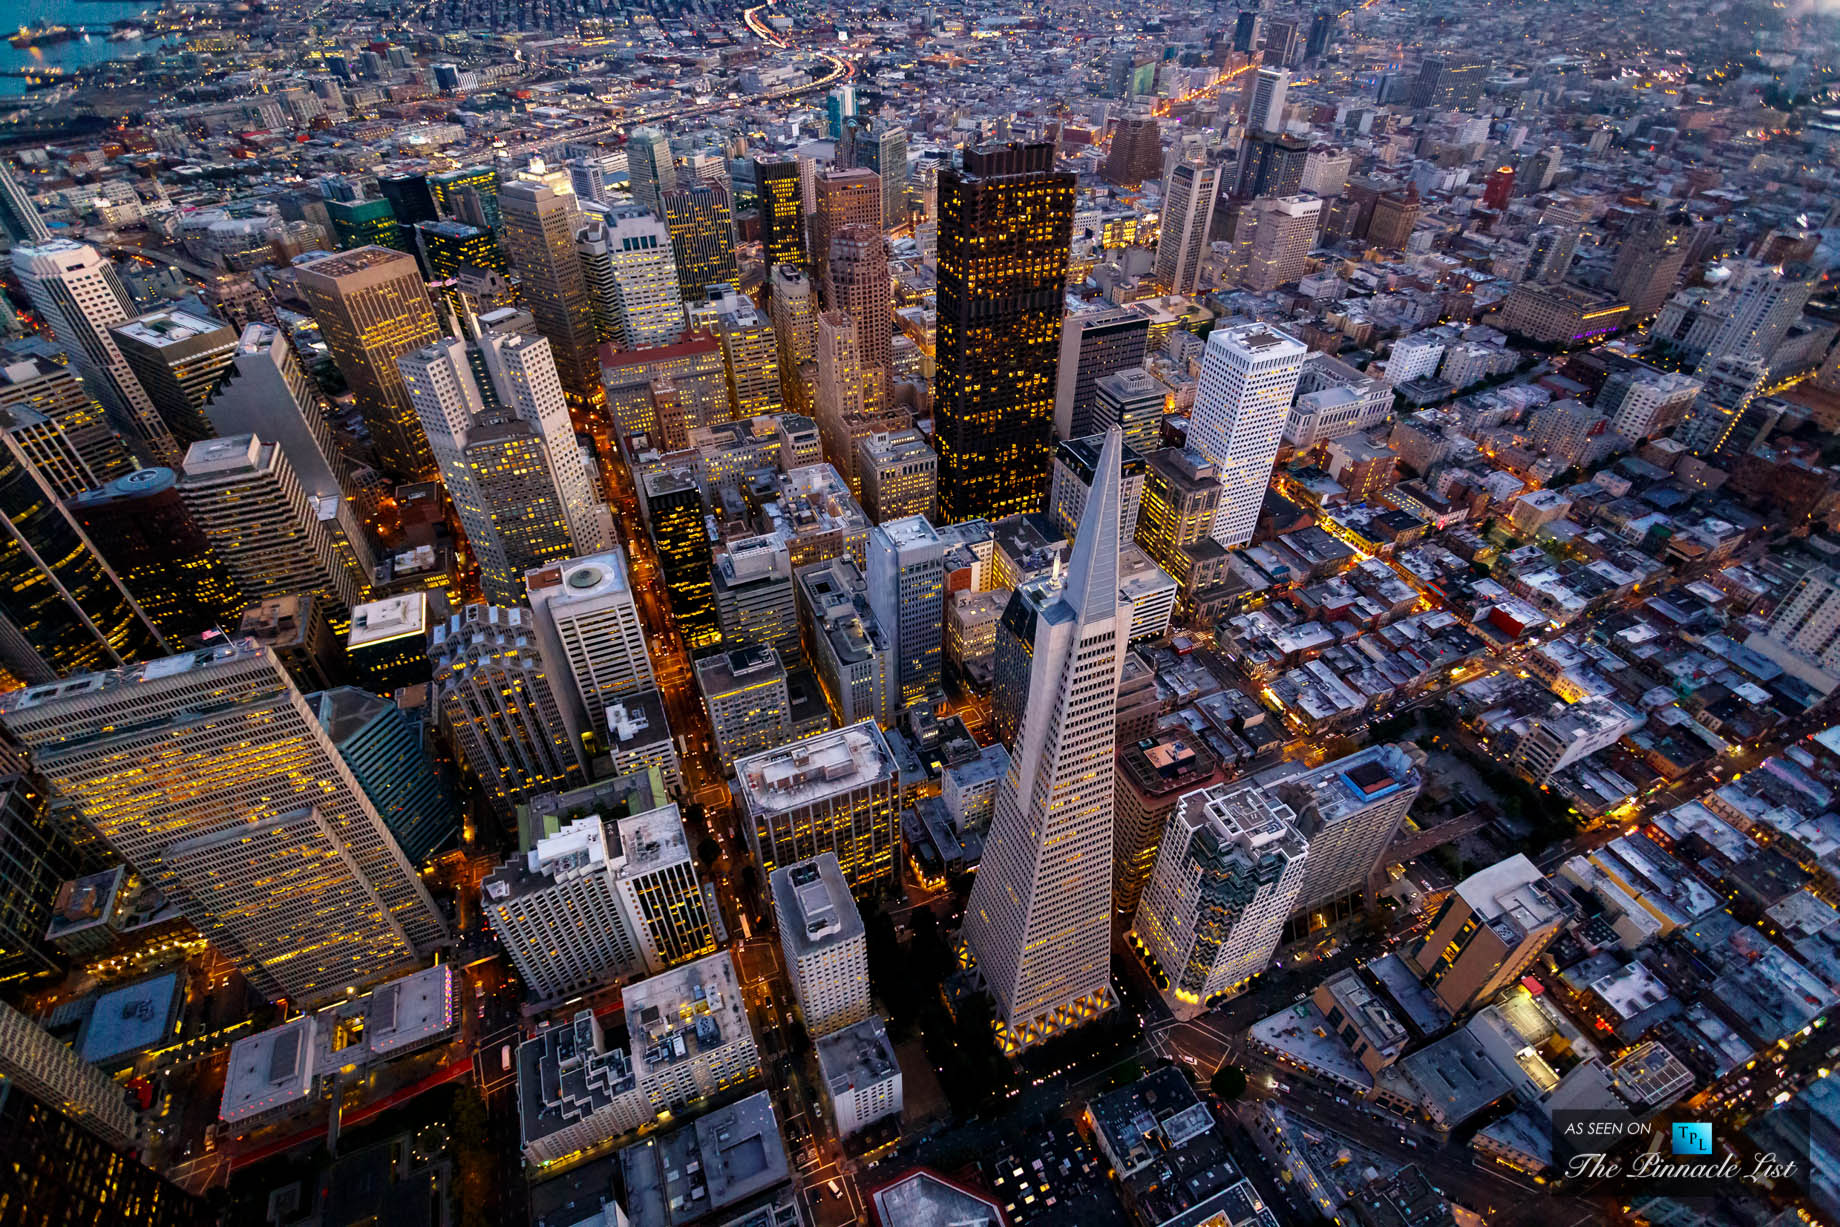 Downtown San Francisco Real Estate - One of the Hottest Housing Markets in America